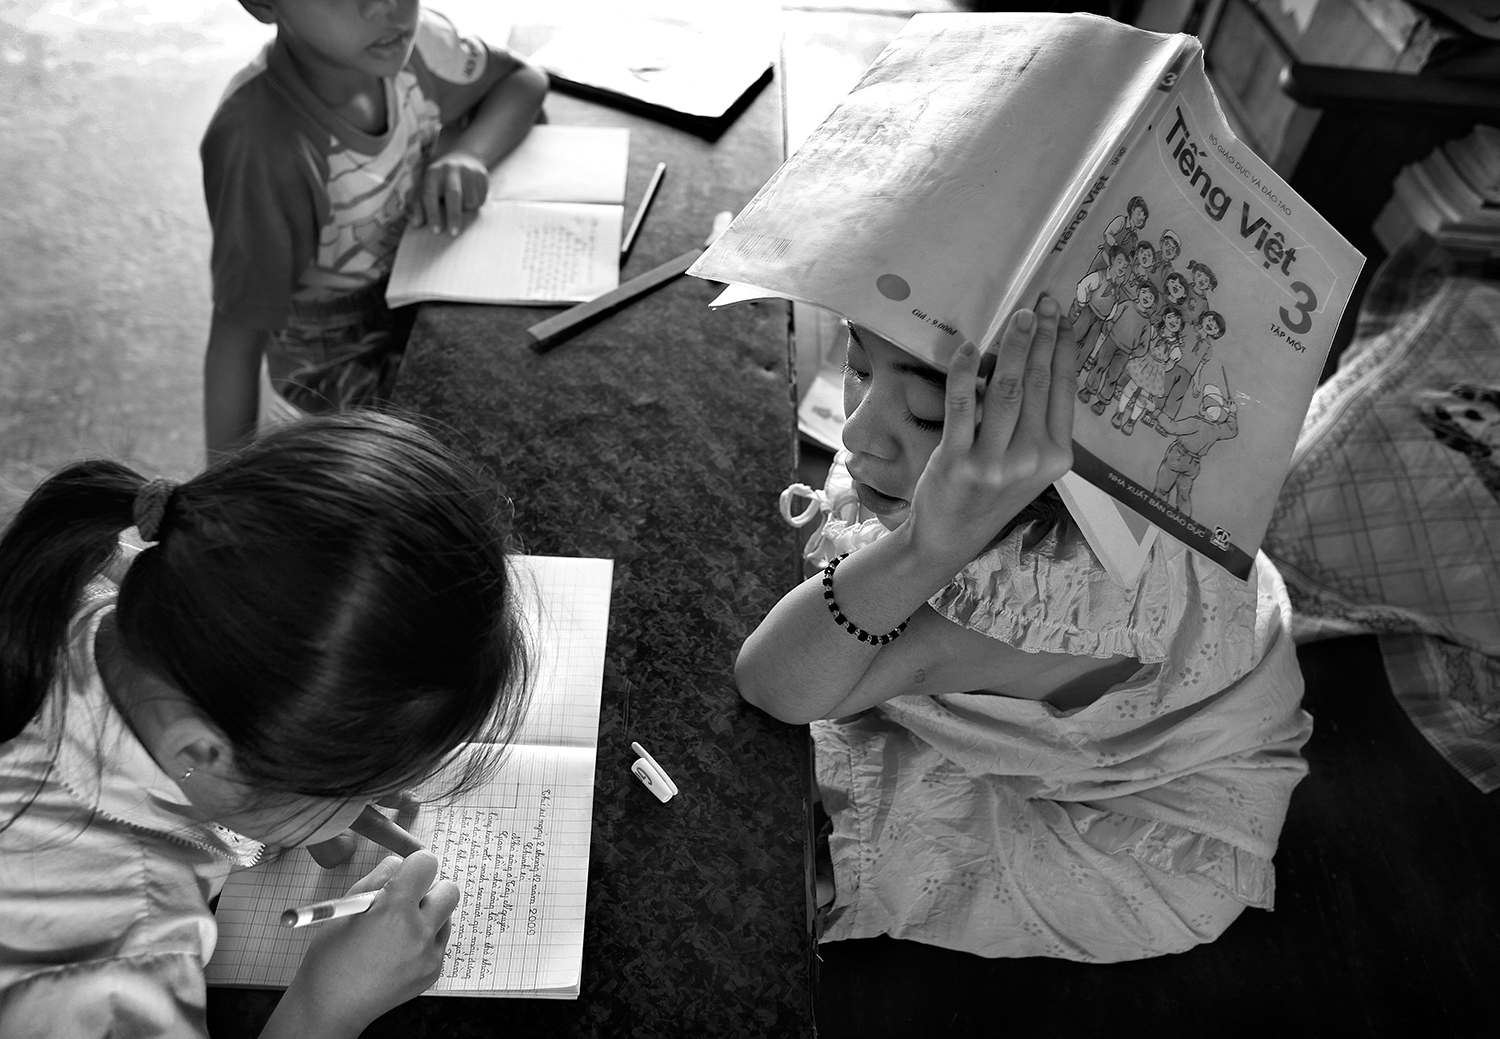 Thao tutoring local children from the village in her library. ~ Stephen Katz